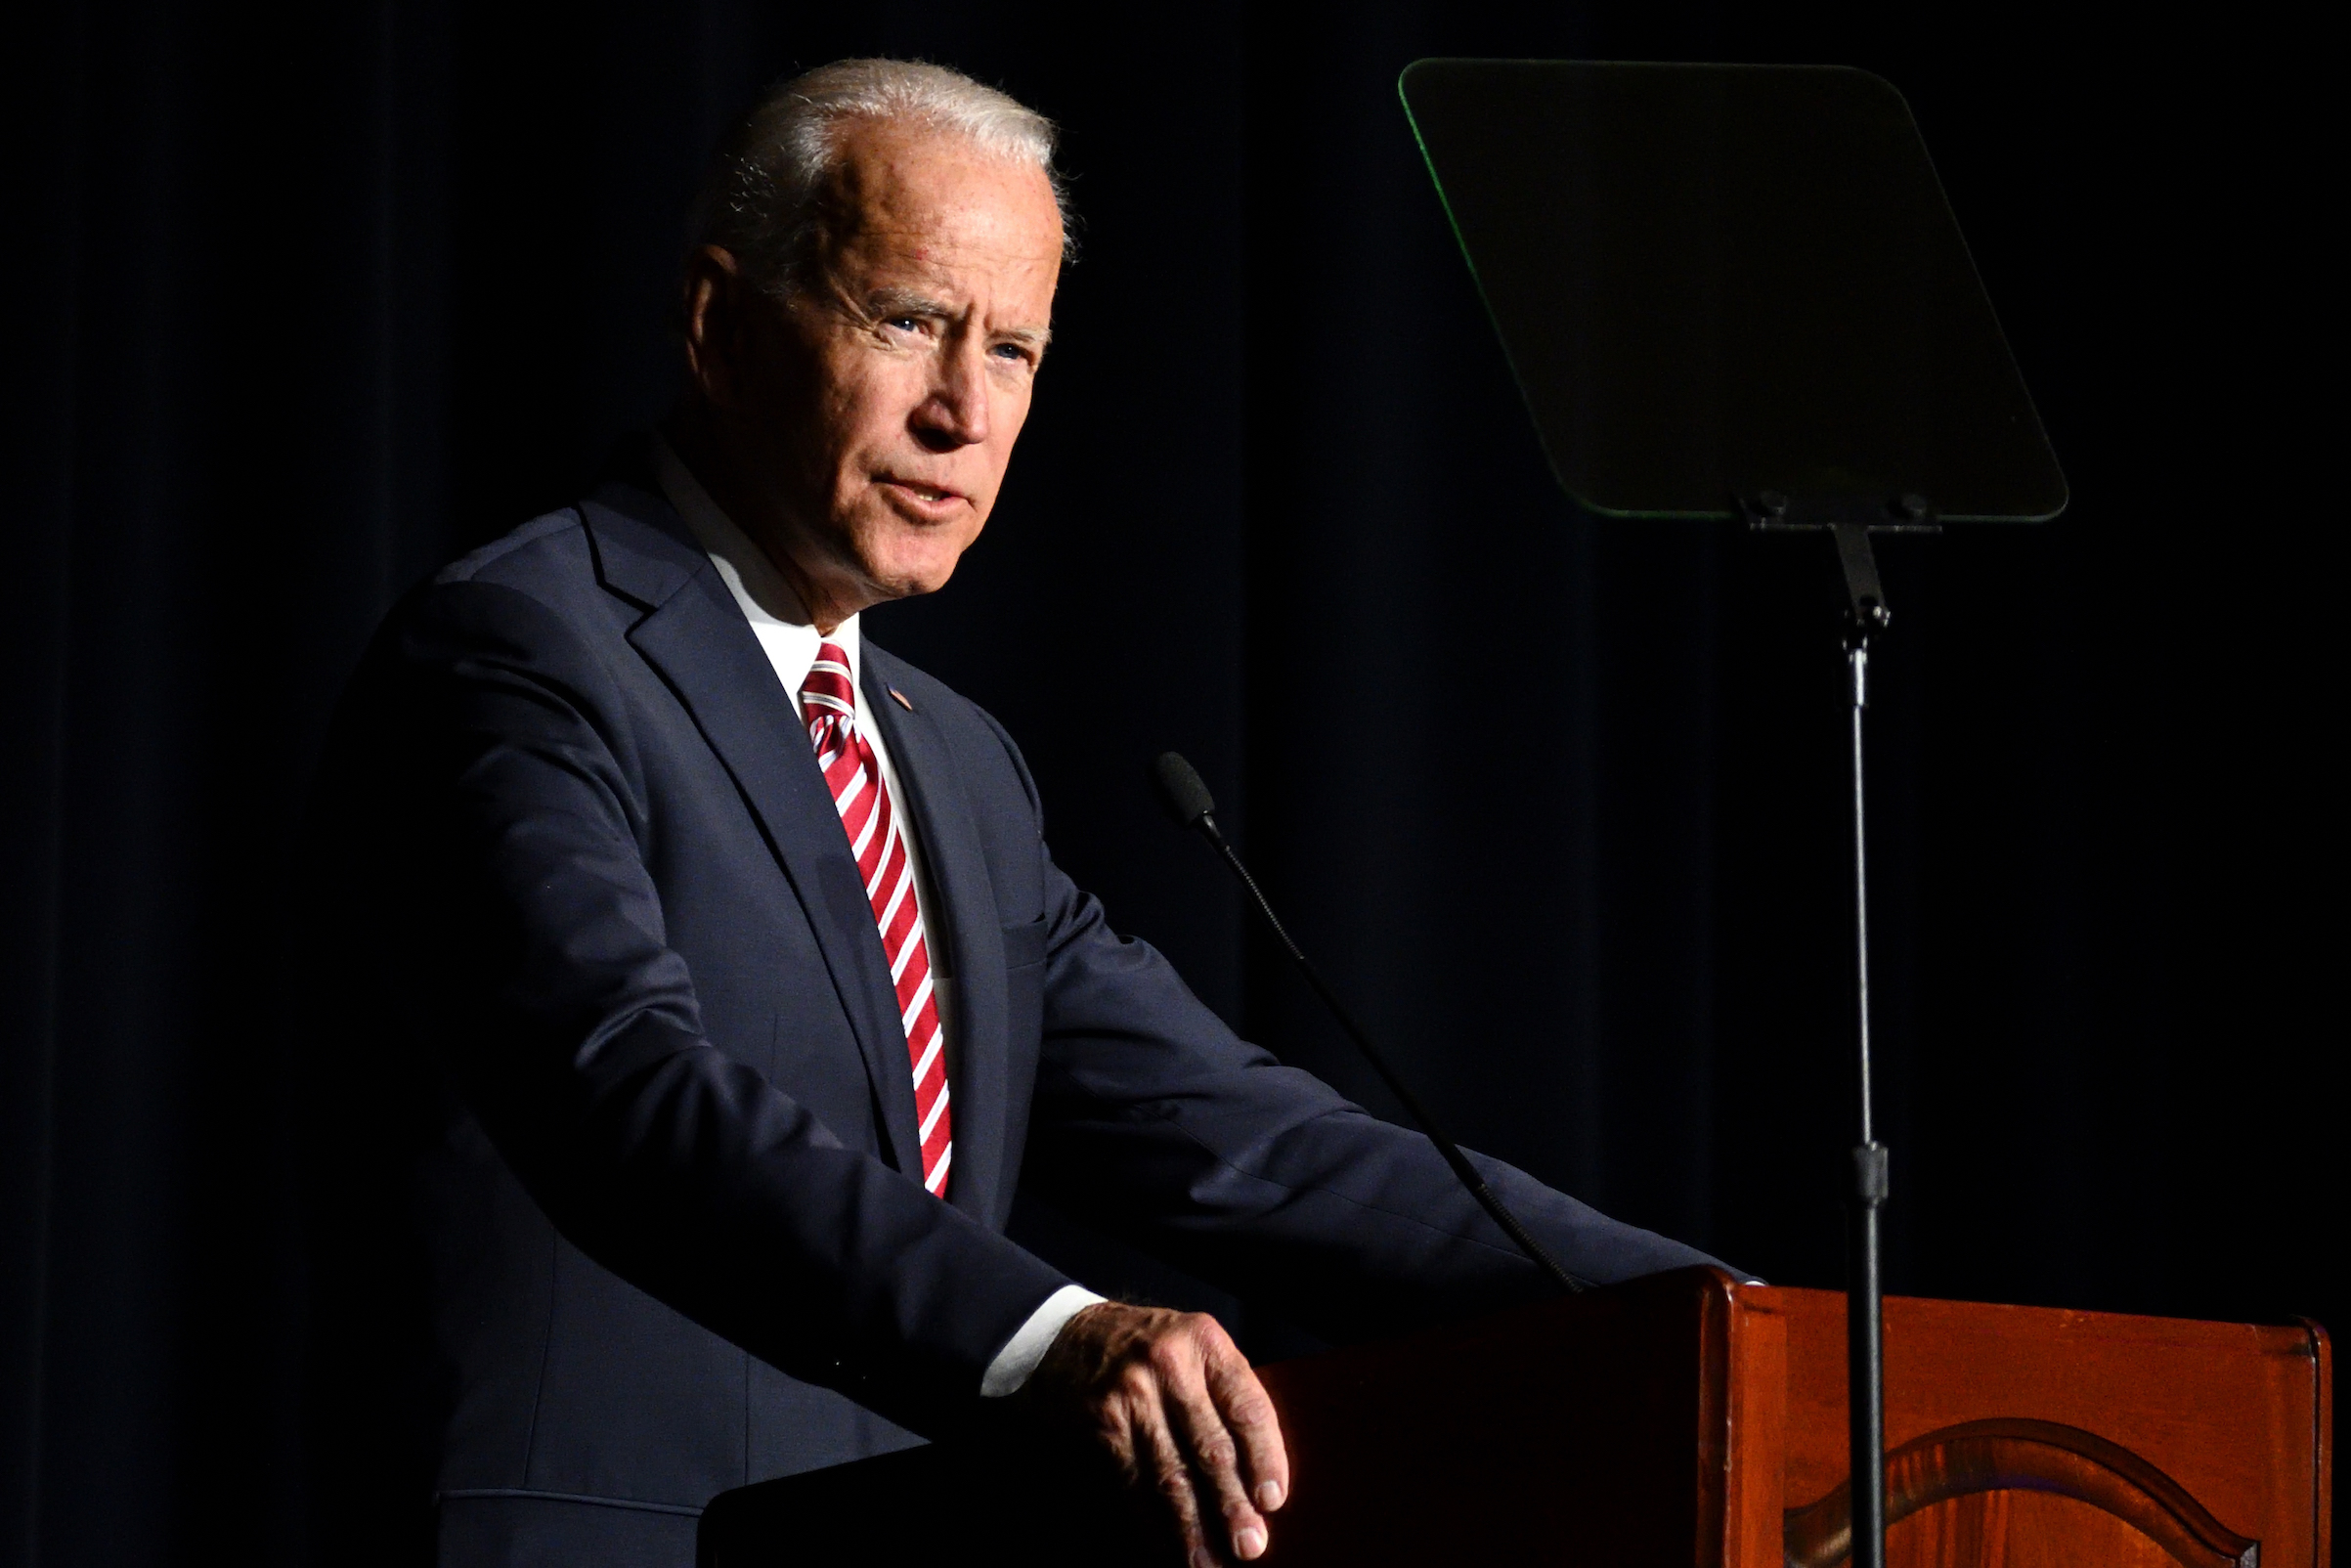 Joe Biden delivers the keynote speech at the First State Democratic Dinner at the Rollins Center in Dover, Del., on March 16, 2019.